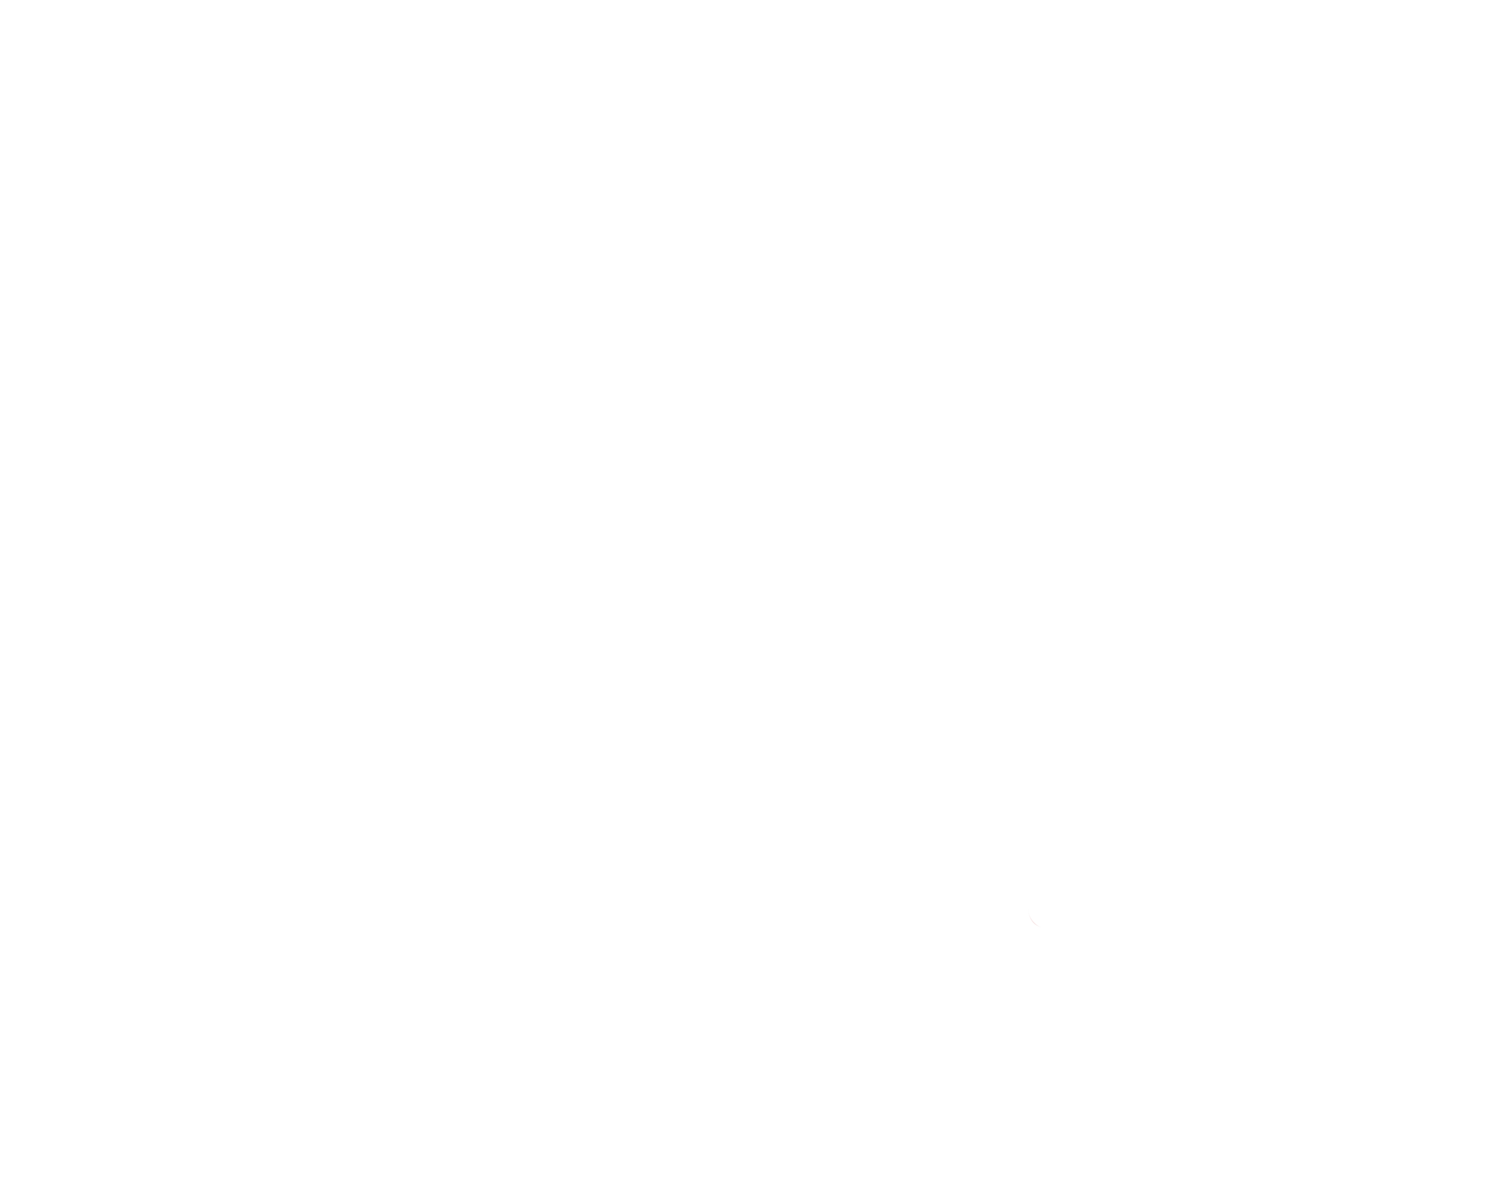 Love Your Flo